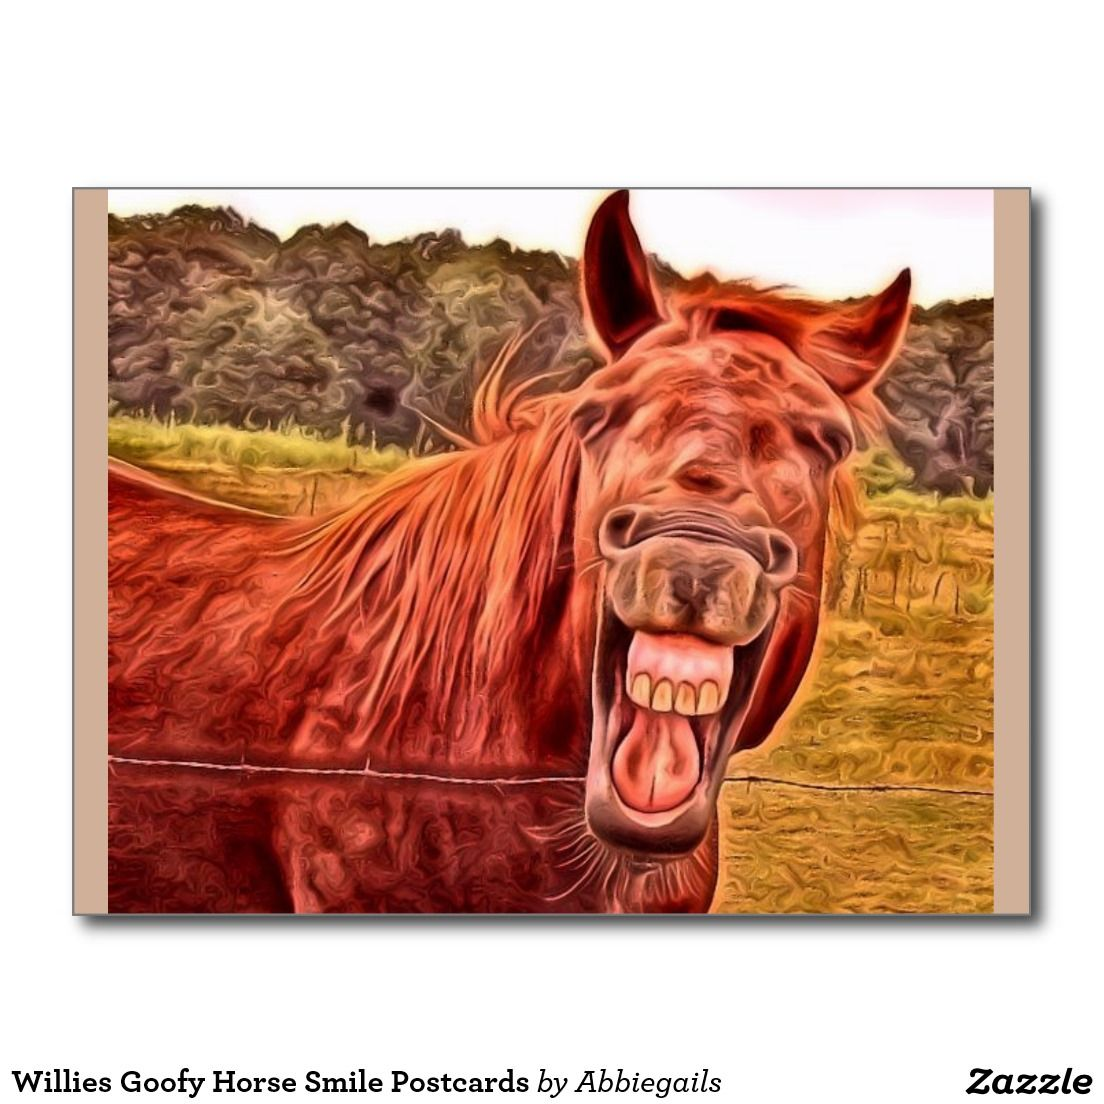 Willies Goofy Horse Smile Postcards